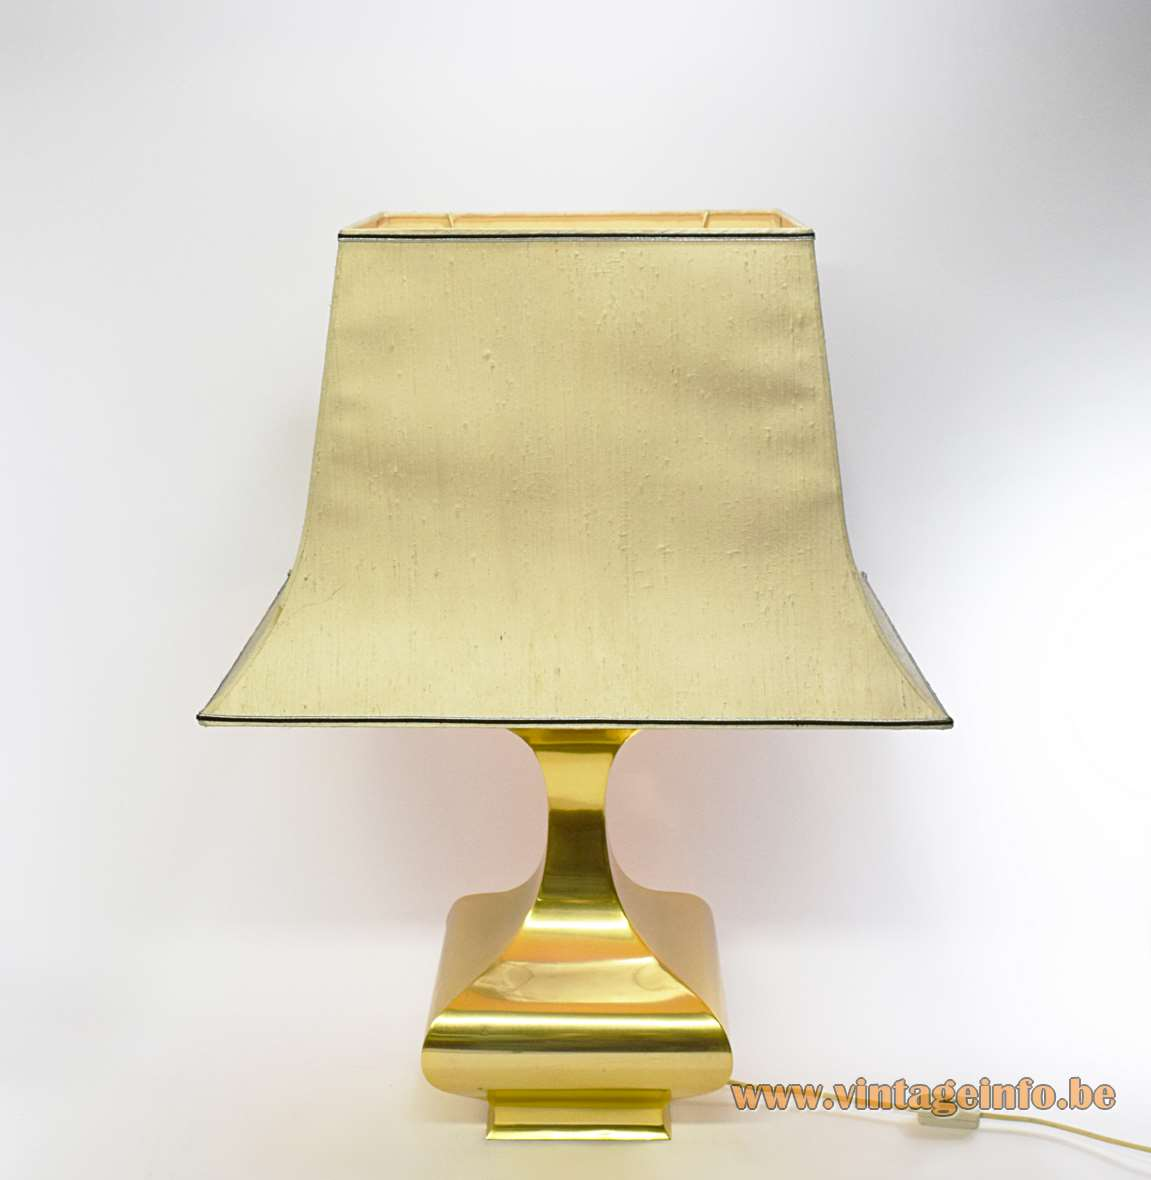 Maria Pergay Balustre Table Lamp